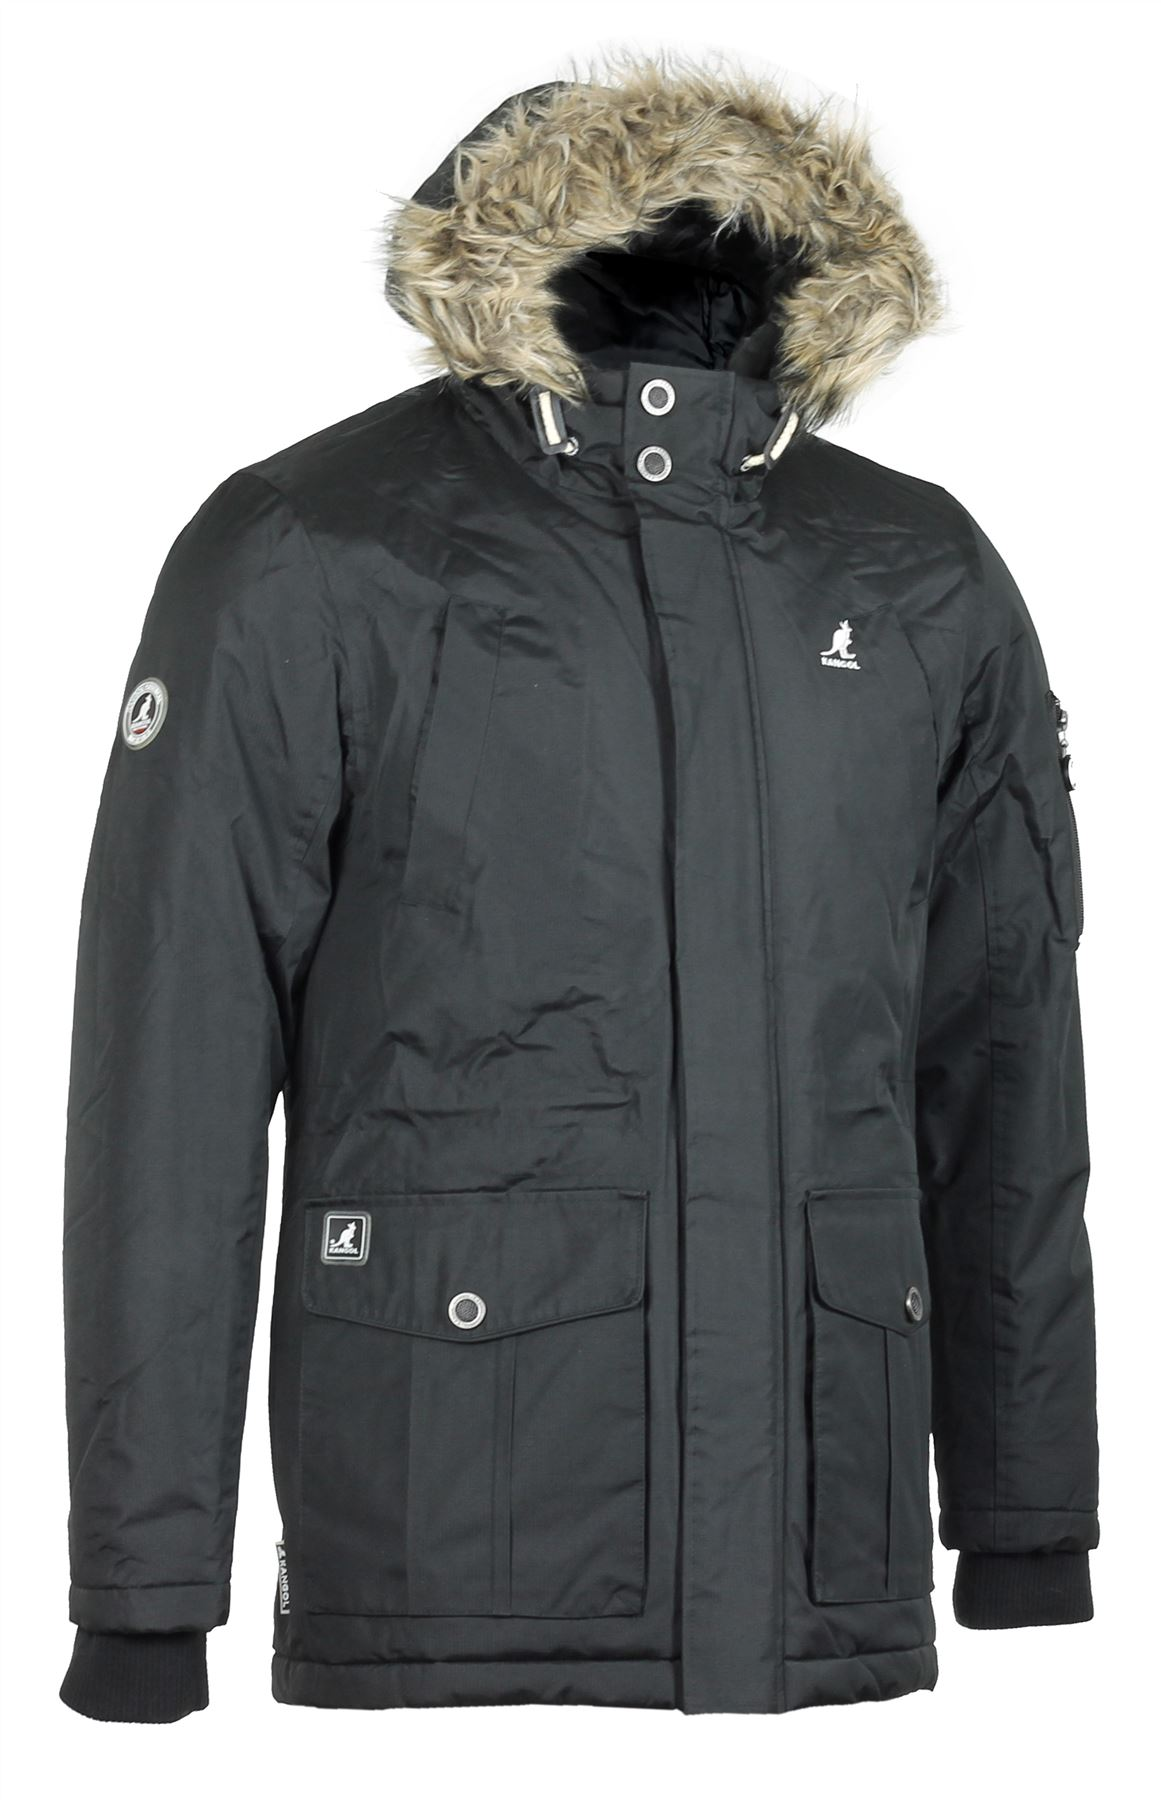 Heavy Duty Winter Jackets | Outdoor Jacket